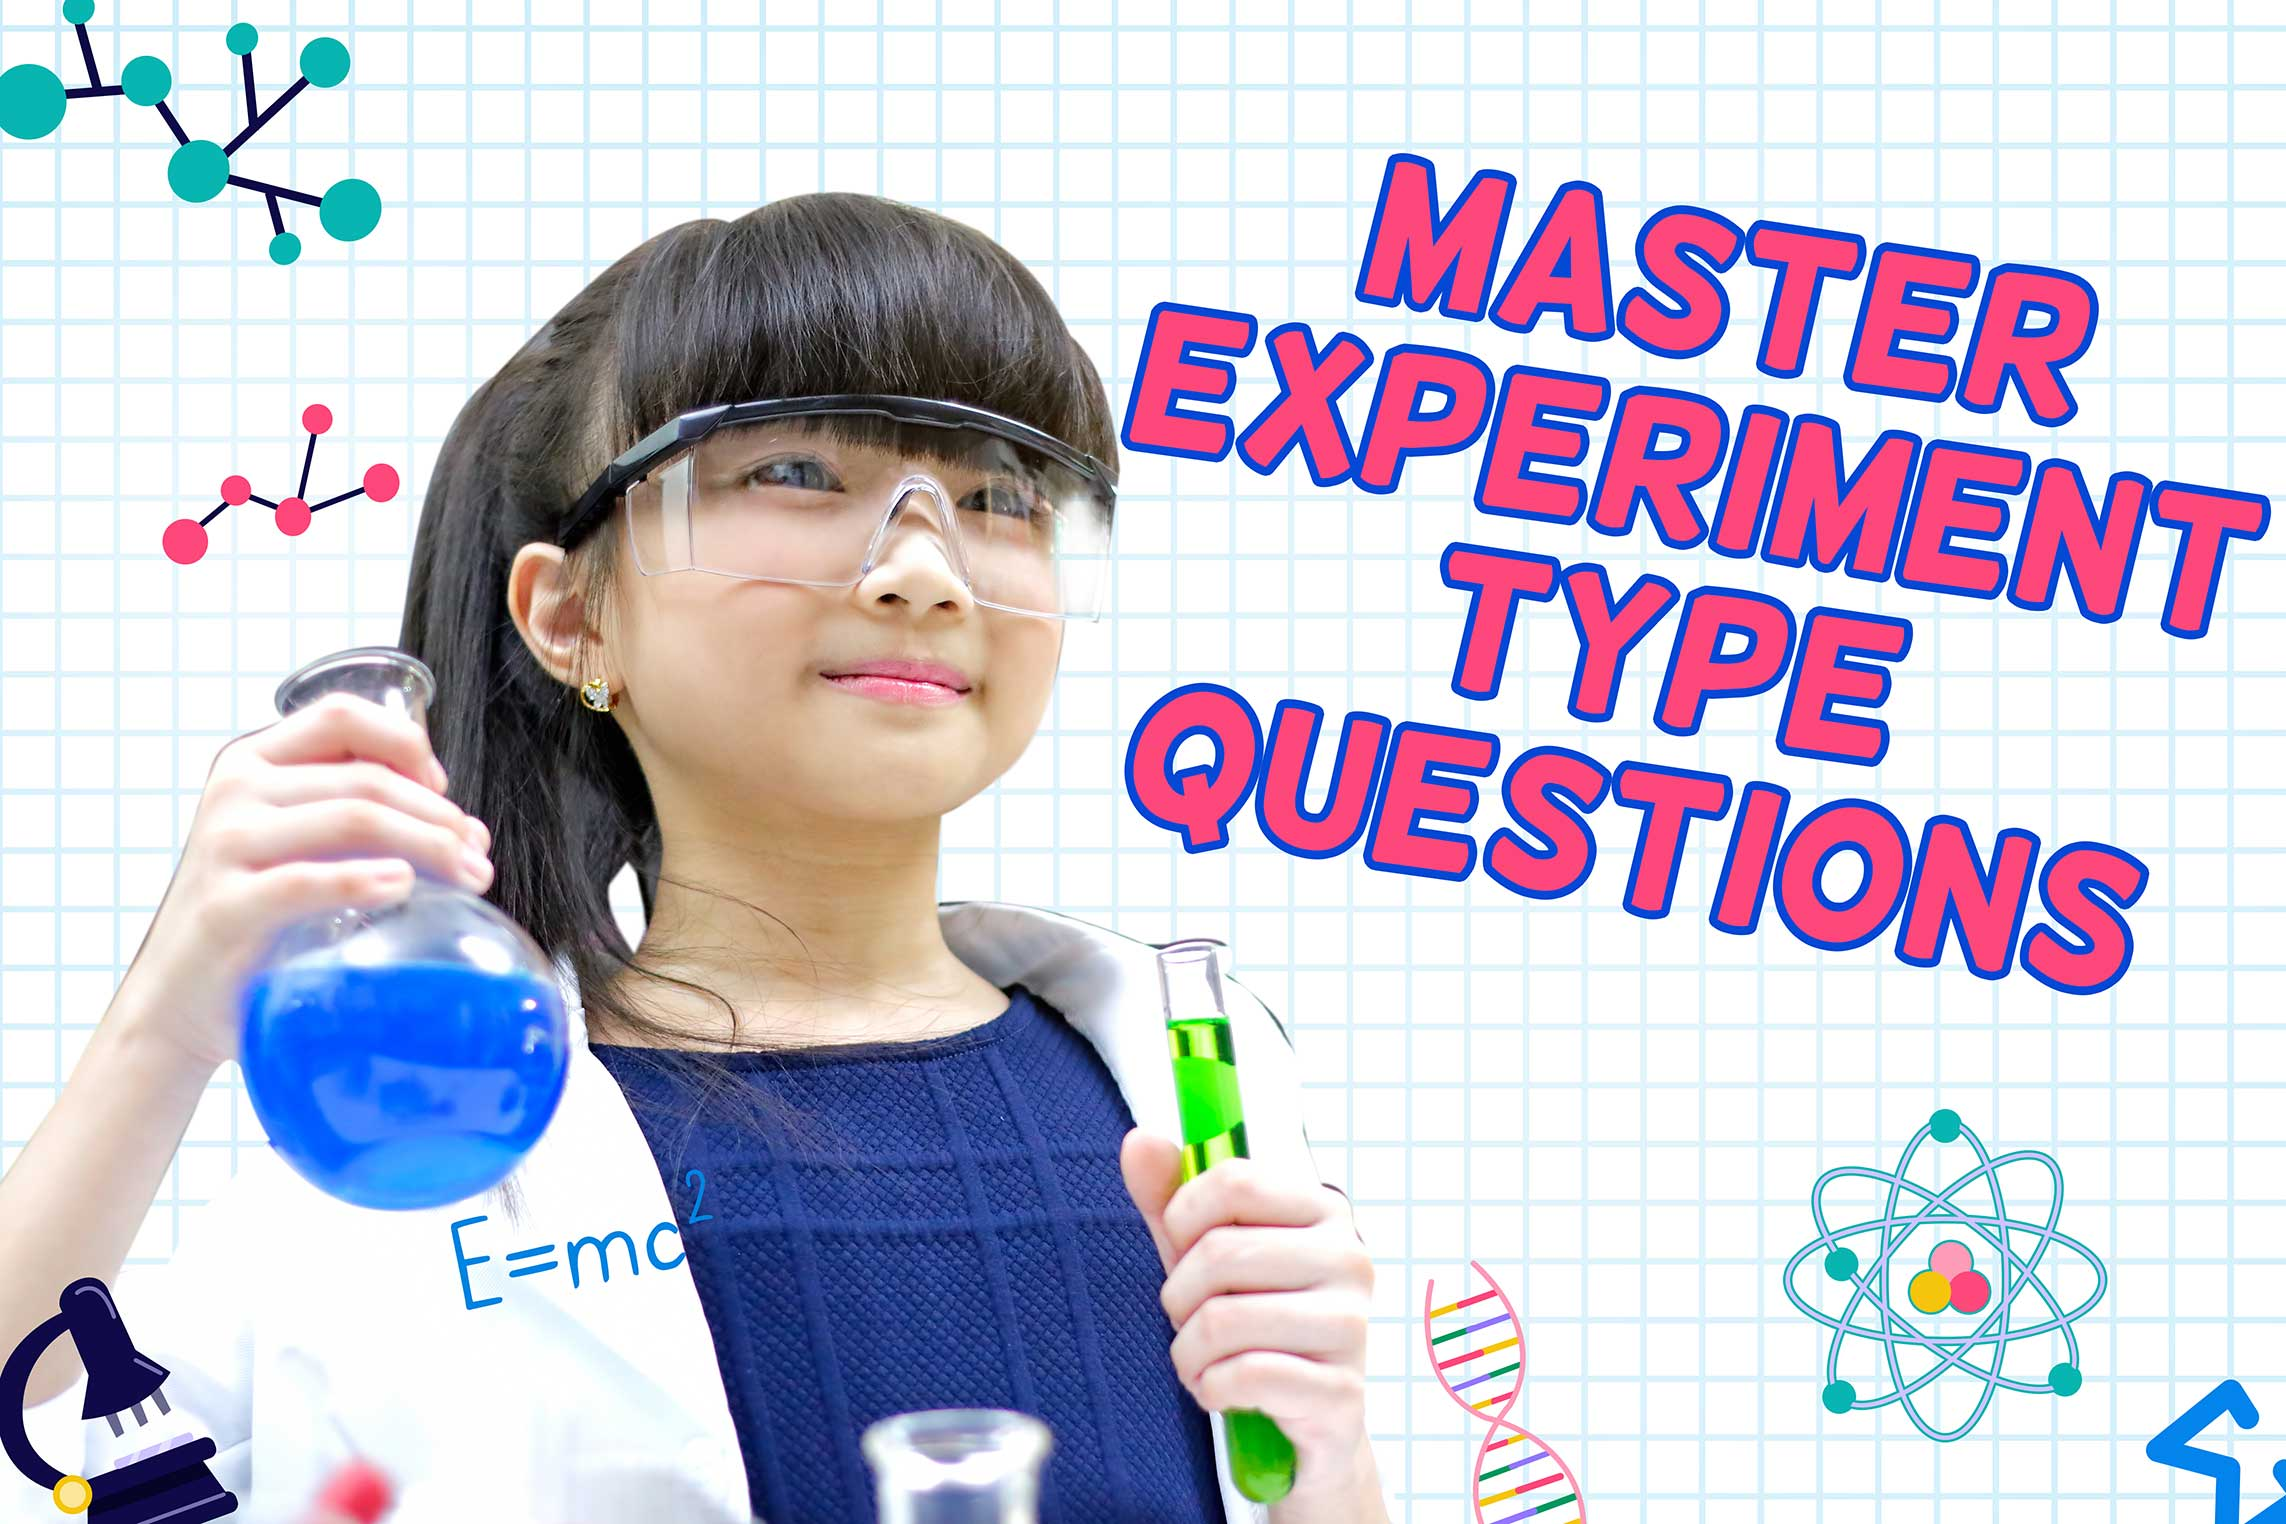 (P3, P4 in 2021) Be a Scientist and Master Experiment Type Questions